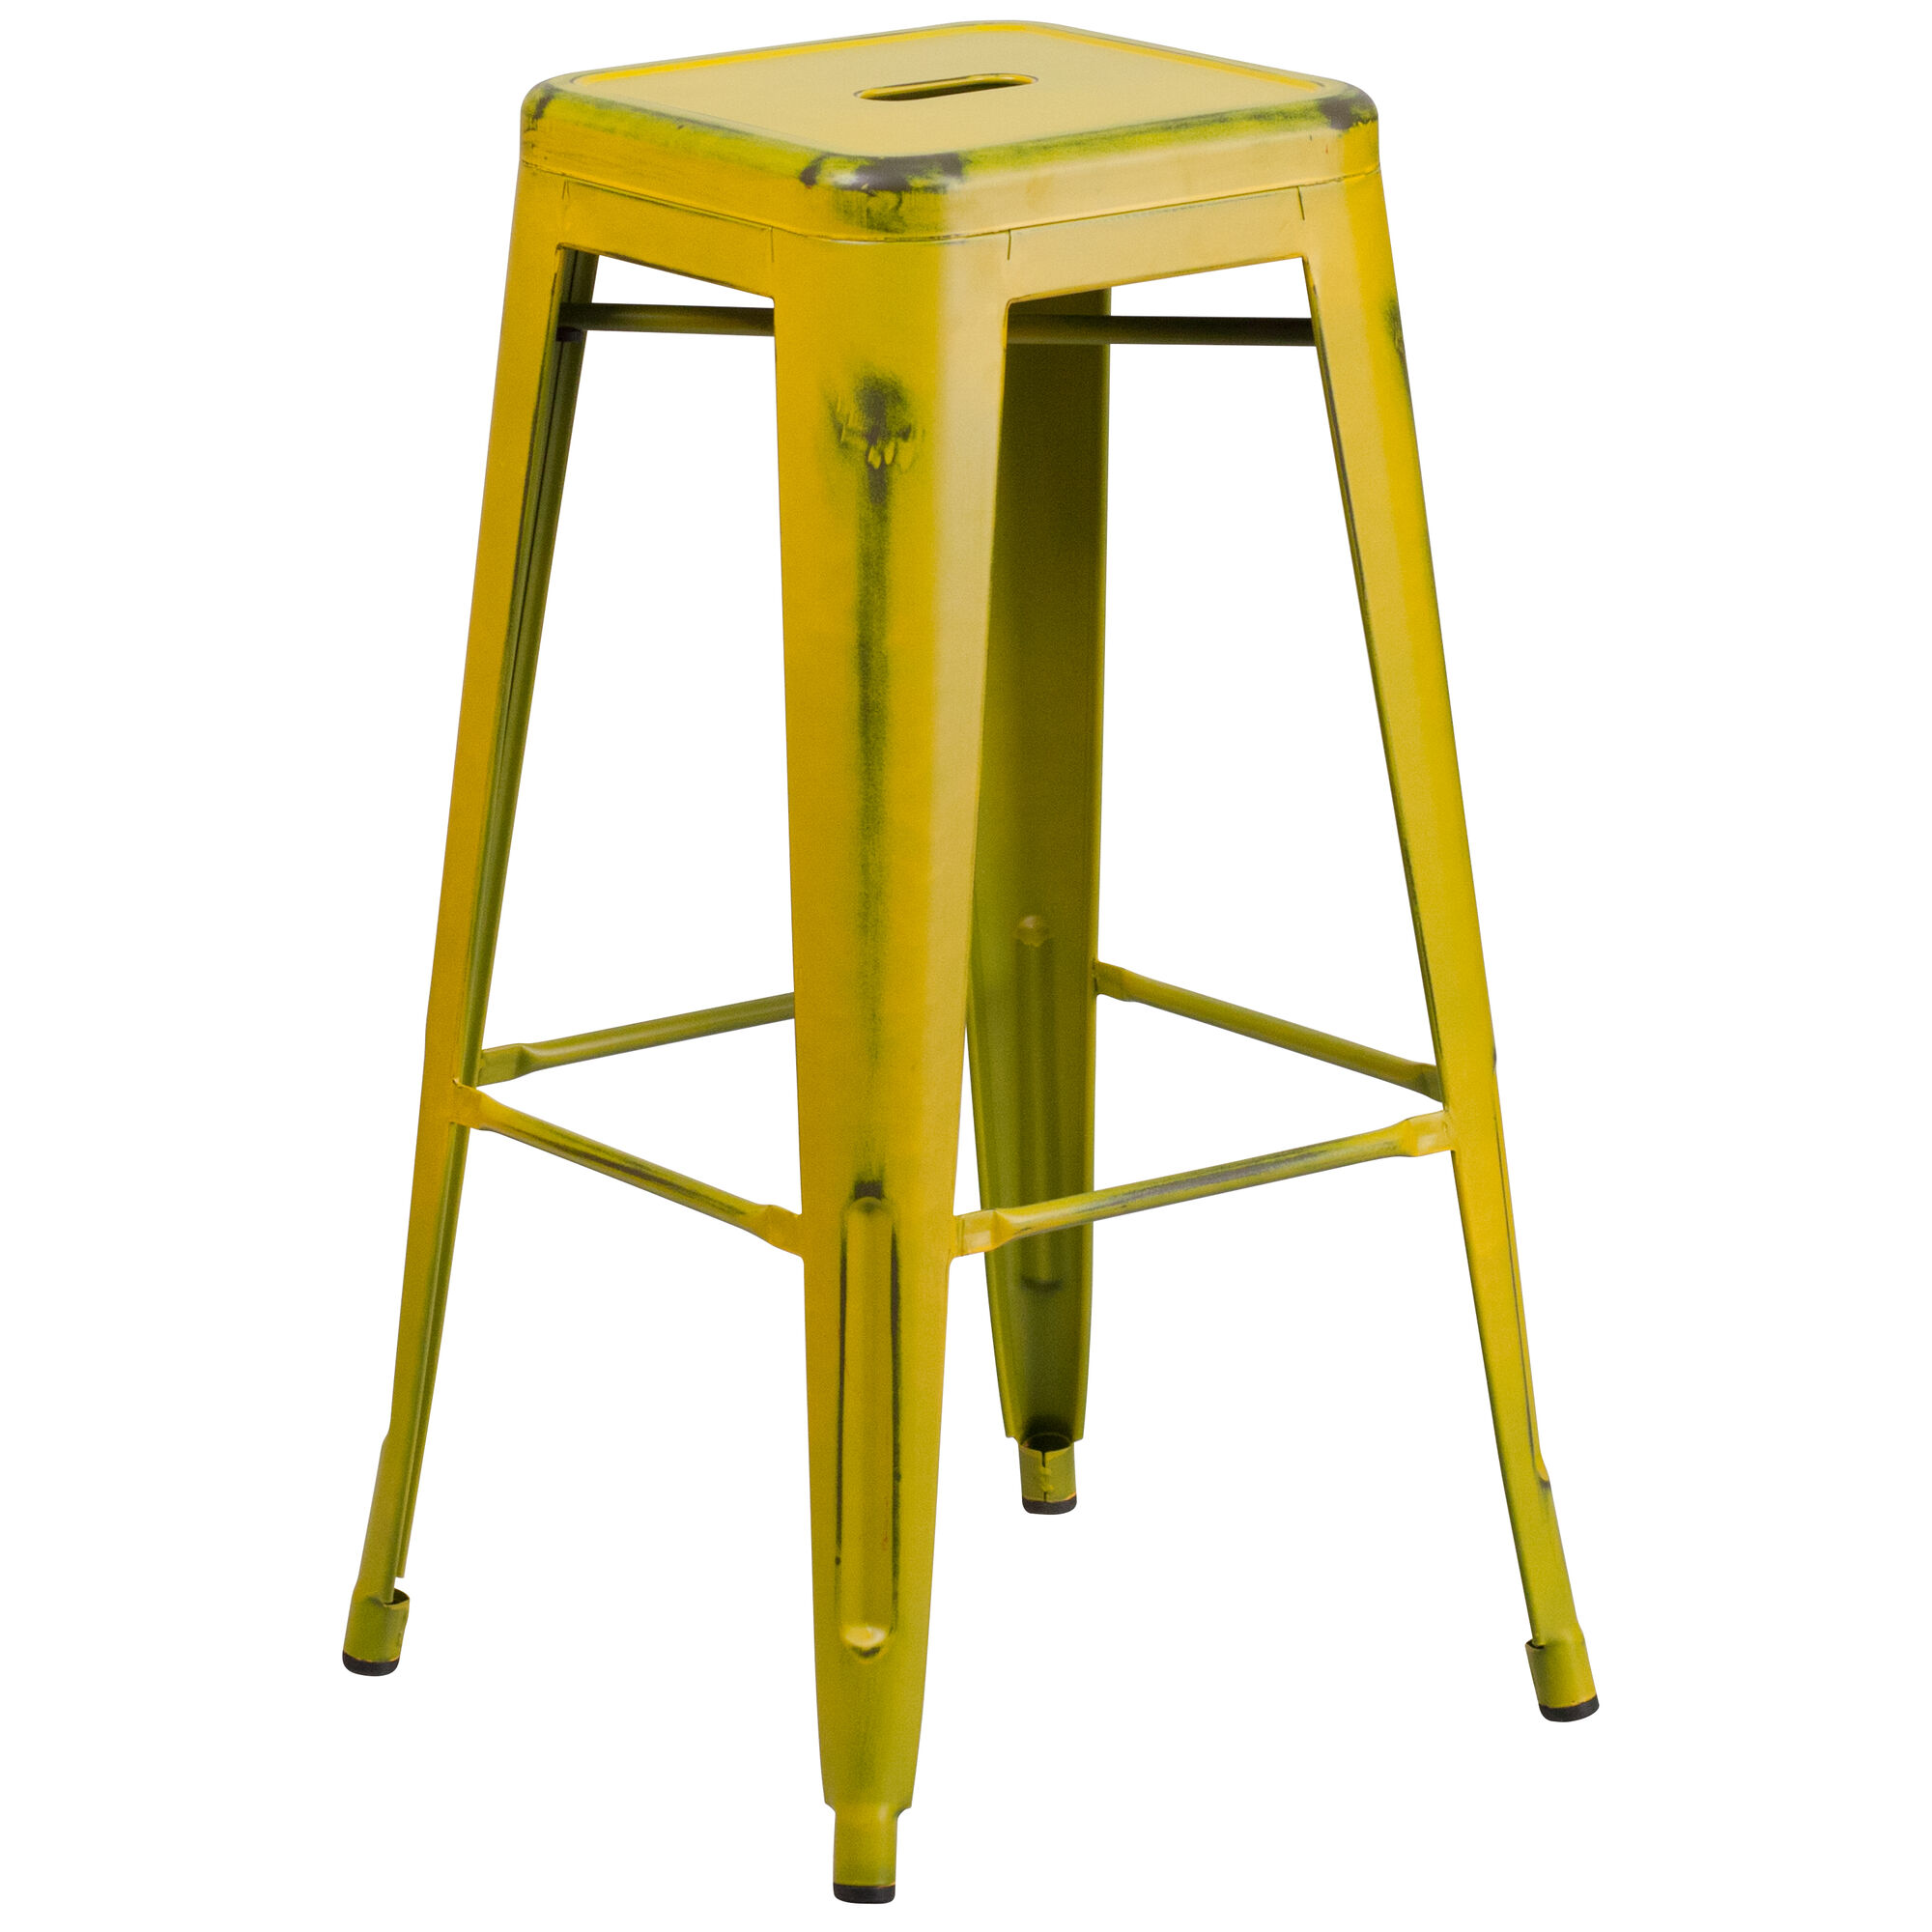 Remarkable Commercial Grade 30 High Backless Distressed Yellow Metal Indoor Outdoor Barstool Pabps2019 Chair Design Images Pabps2019Com